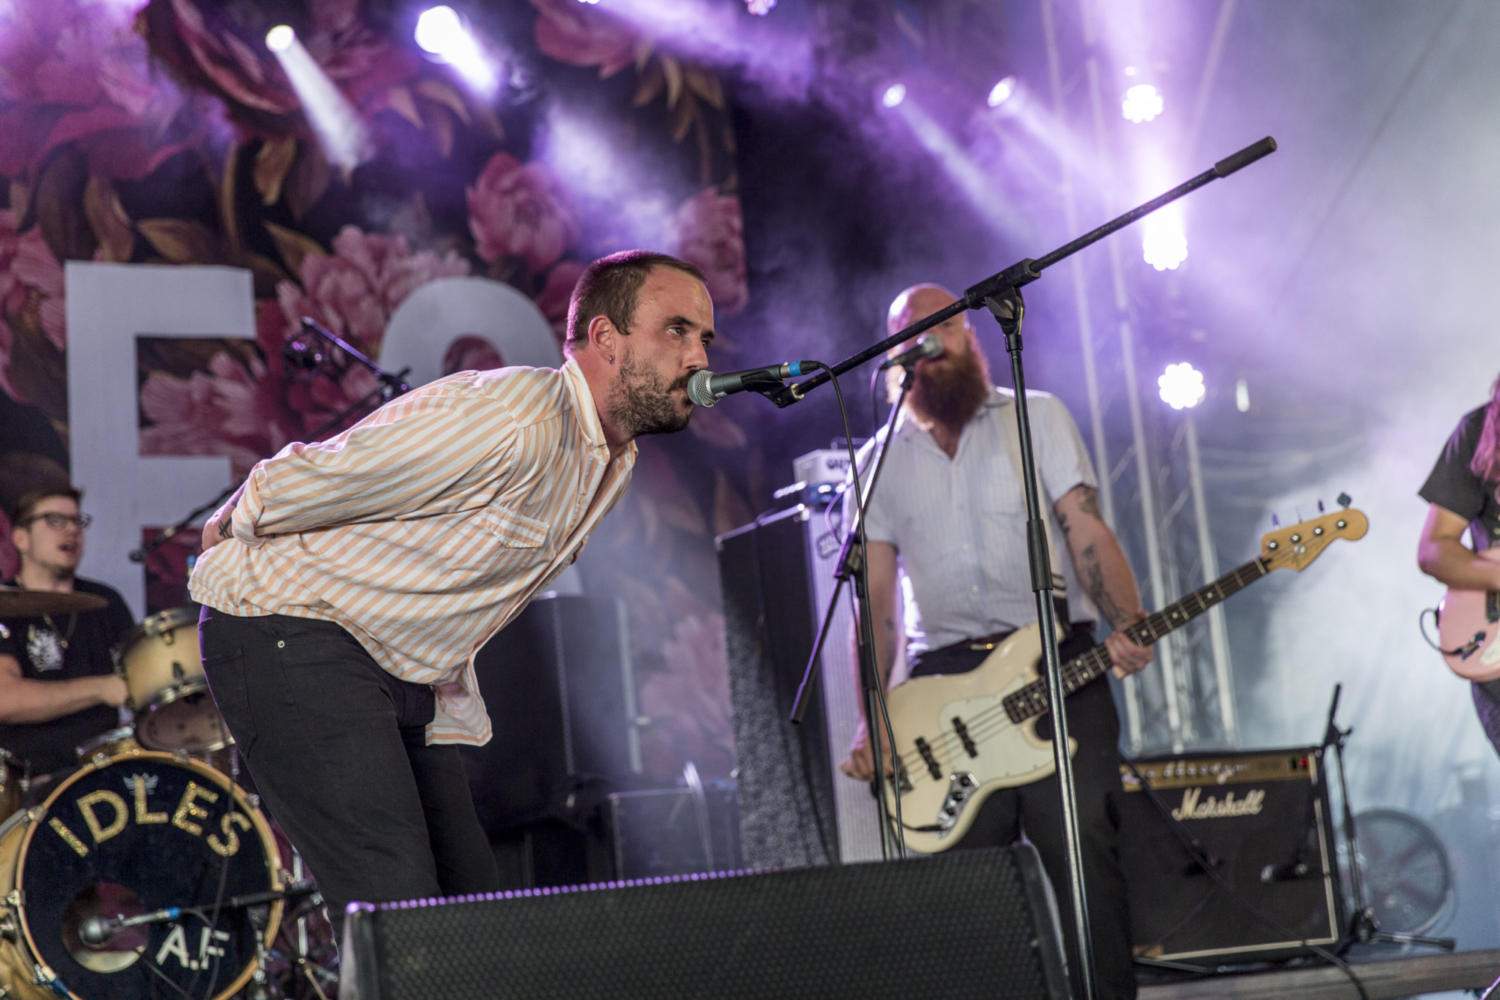 IDLES, Chastity Belt, Nilüfer Yanya and more are headed to Visions 2018